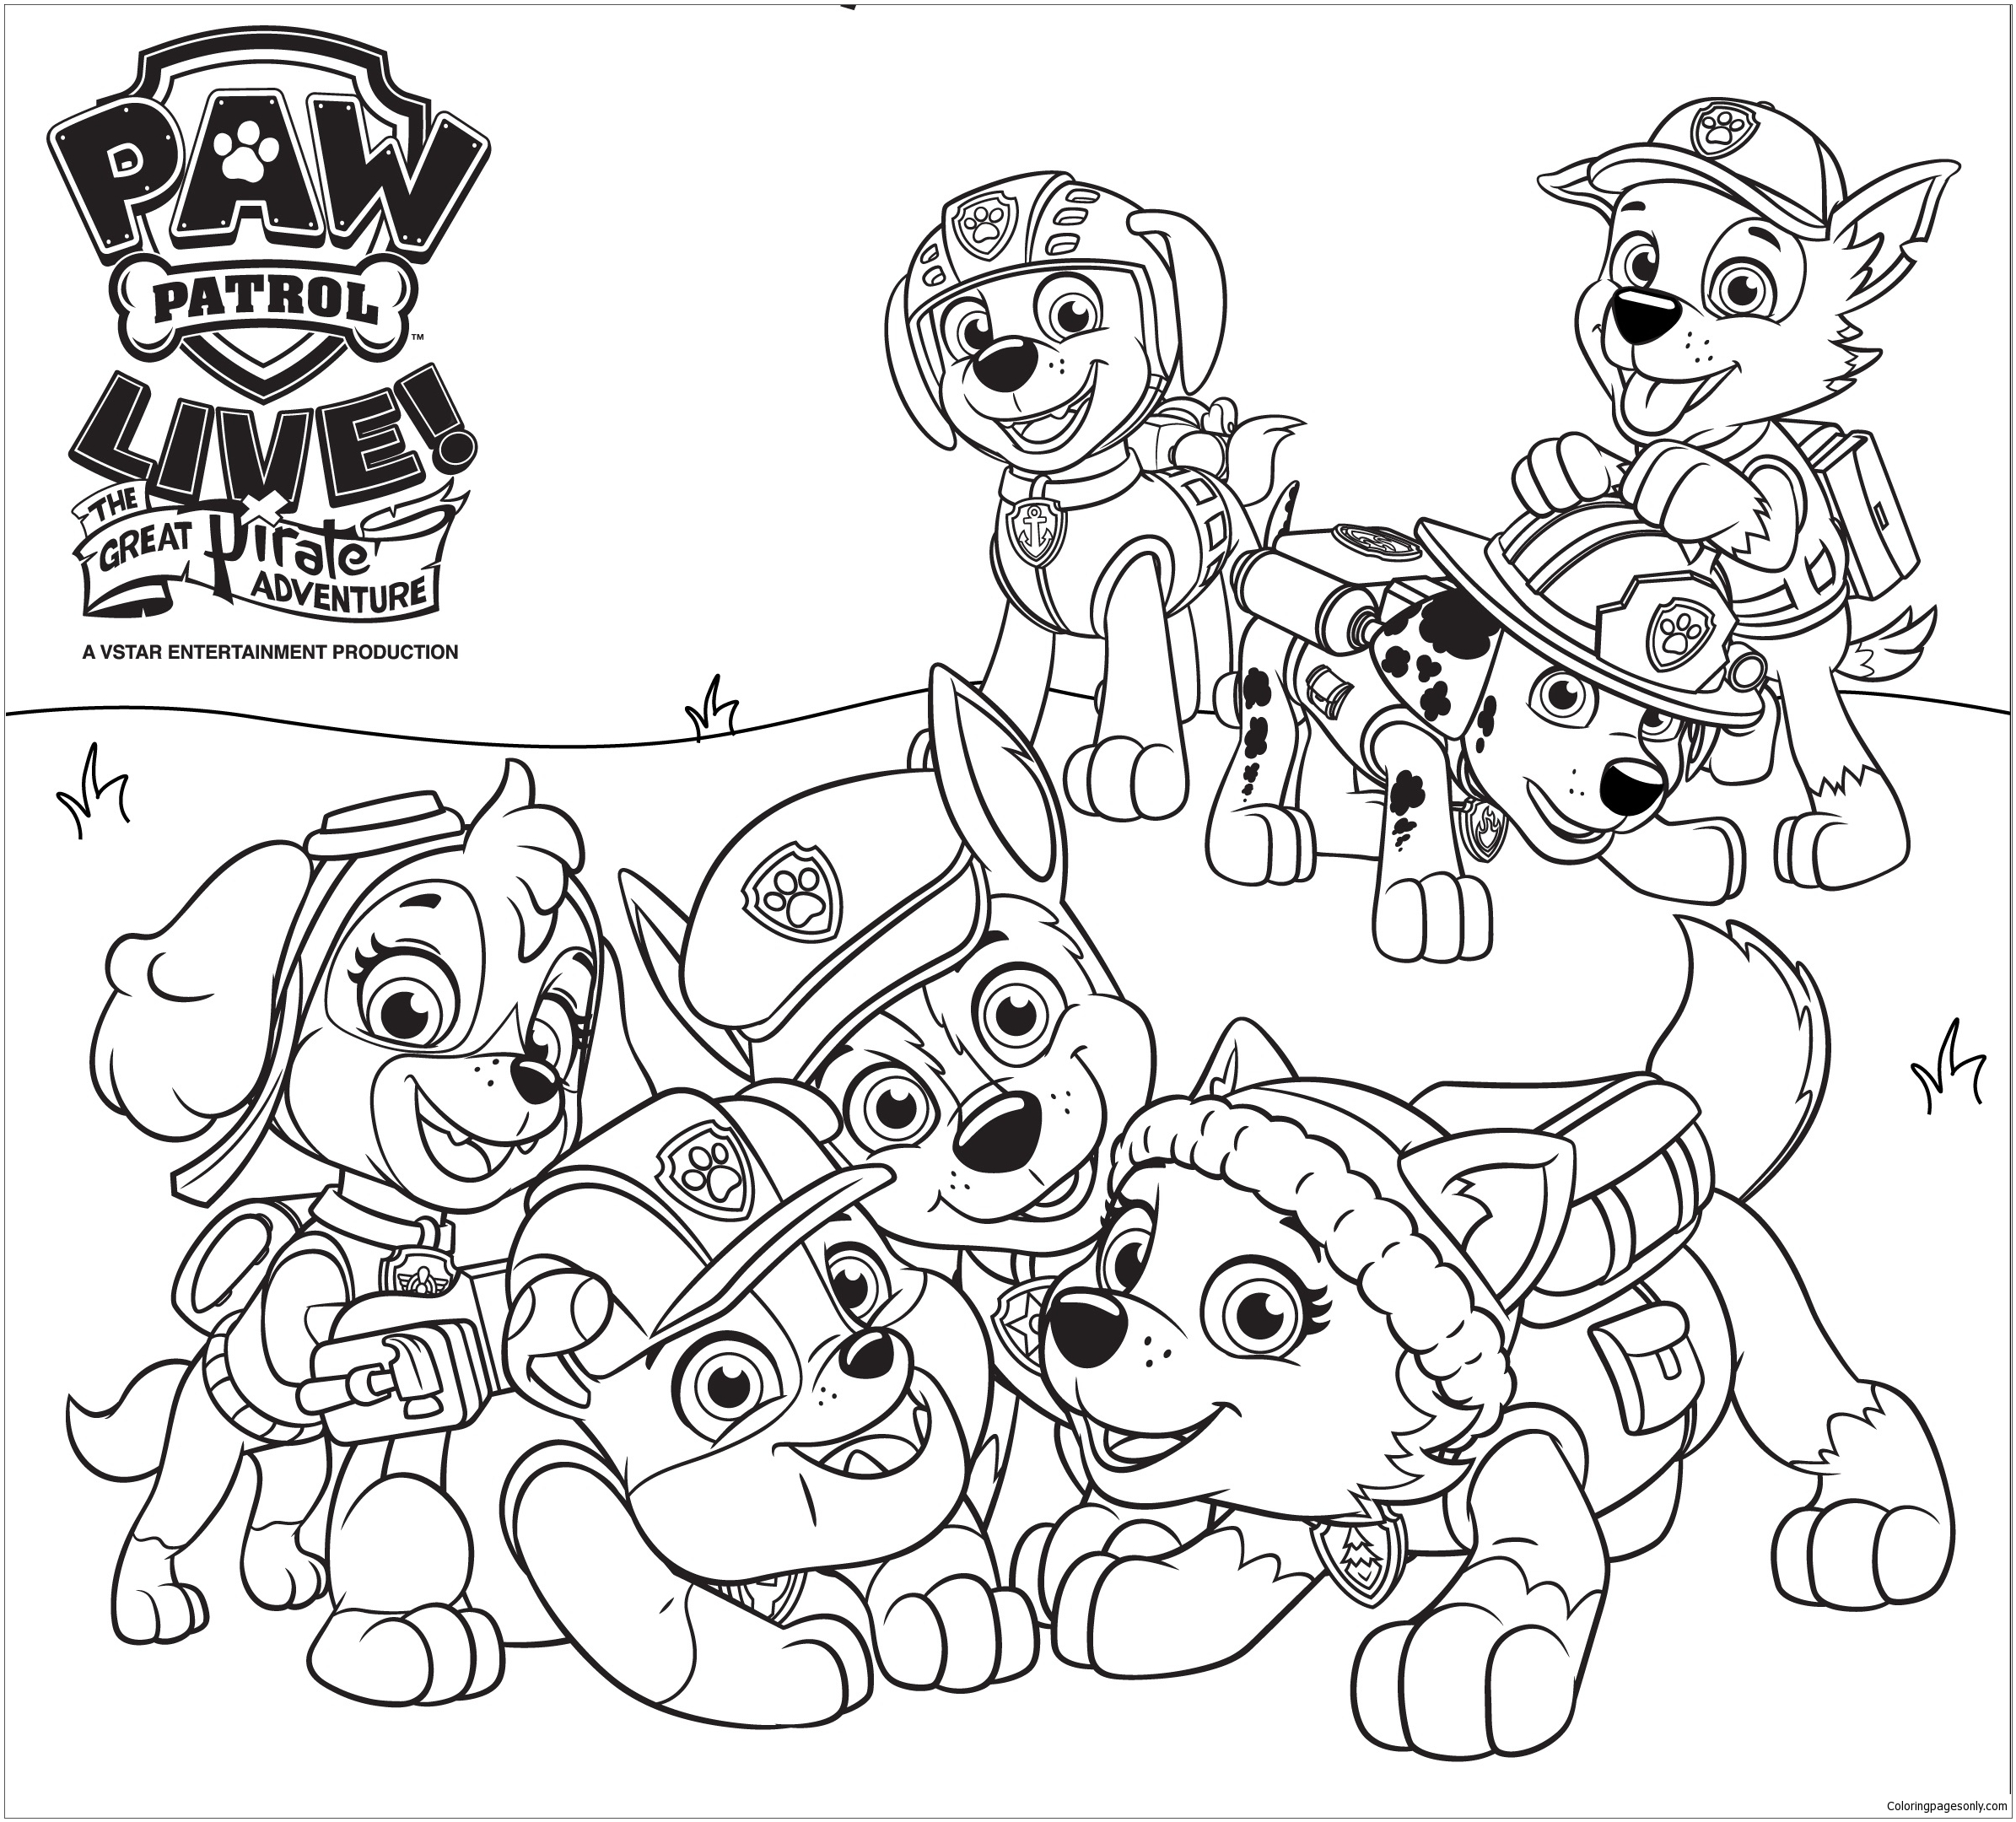 - Paw Patrol 40 Coloring Page - Free Coloring Pages Online